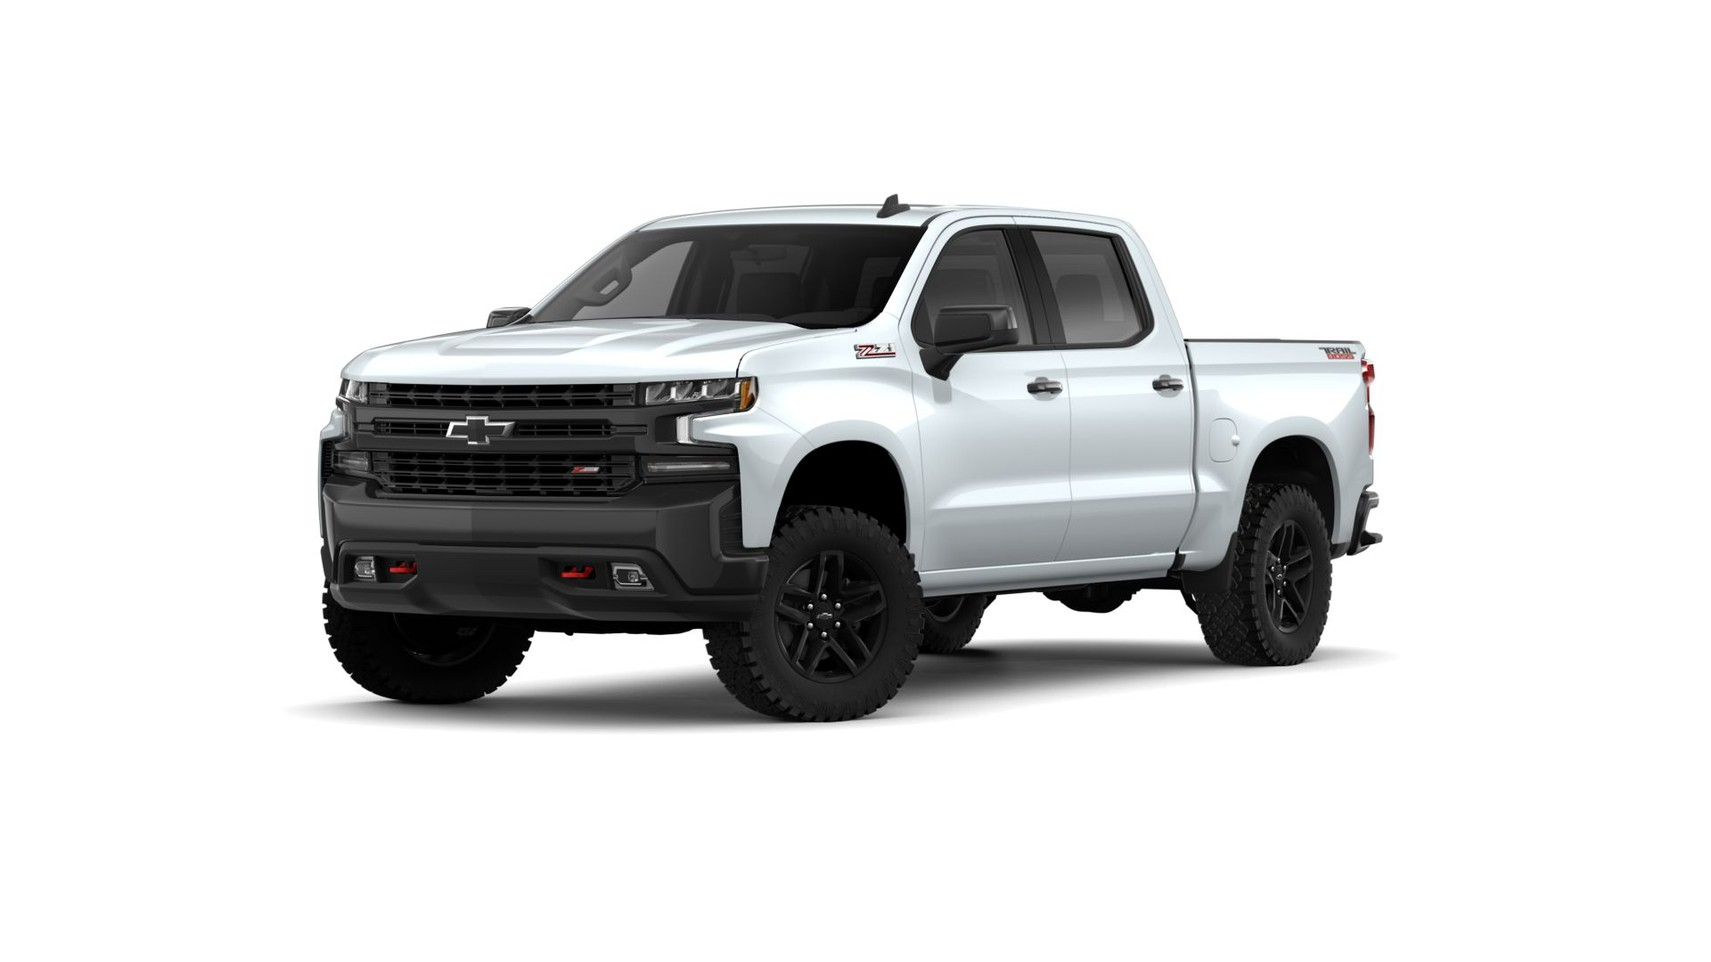 Chevrolet Silverado 1500 2019 LT Trail Boss 5.3 V8 EcoTec3 with DFM Бензин 6 ст. АКПП Полный